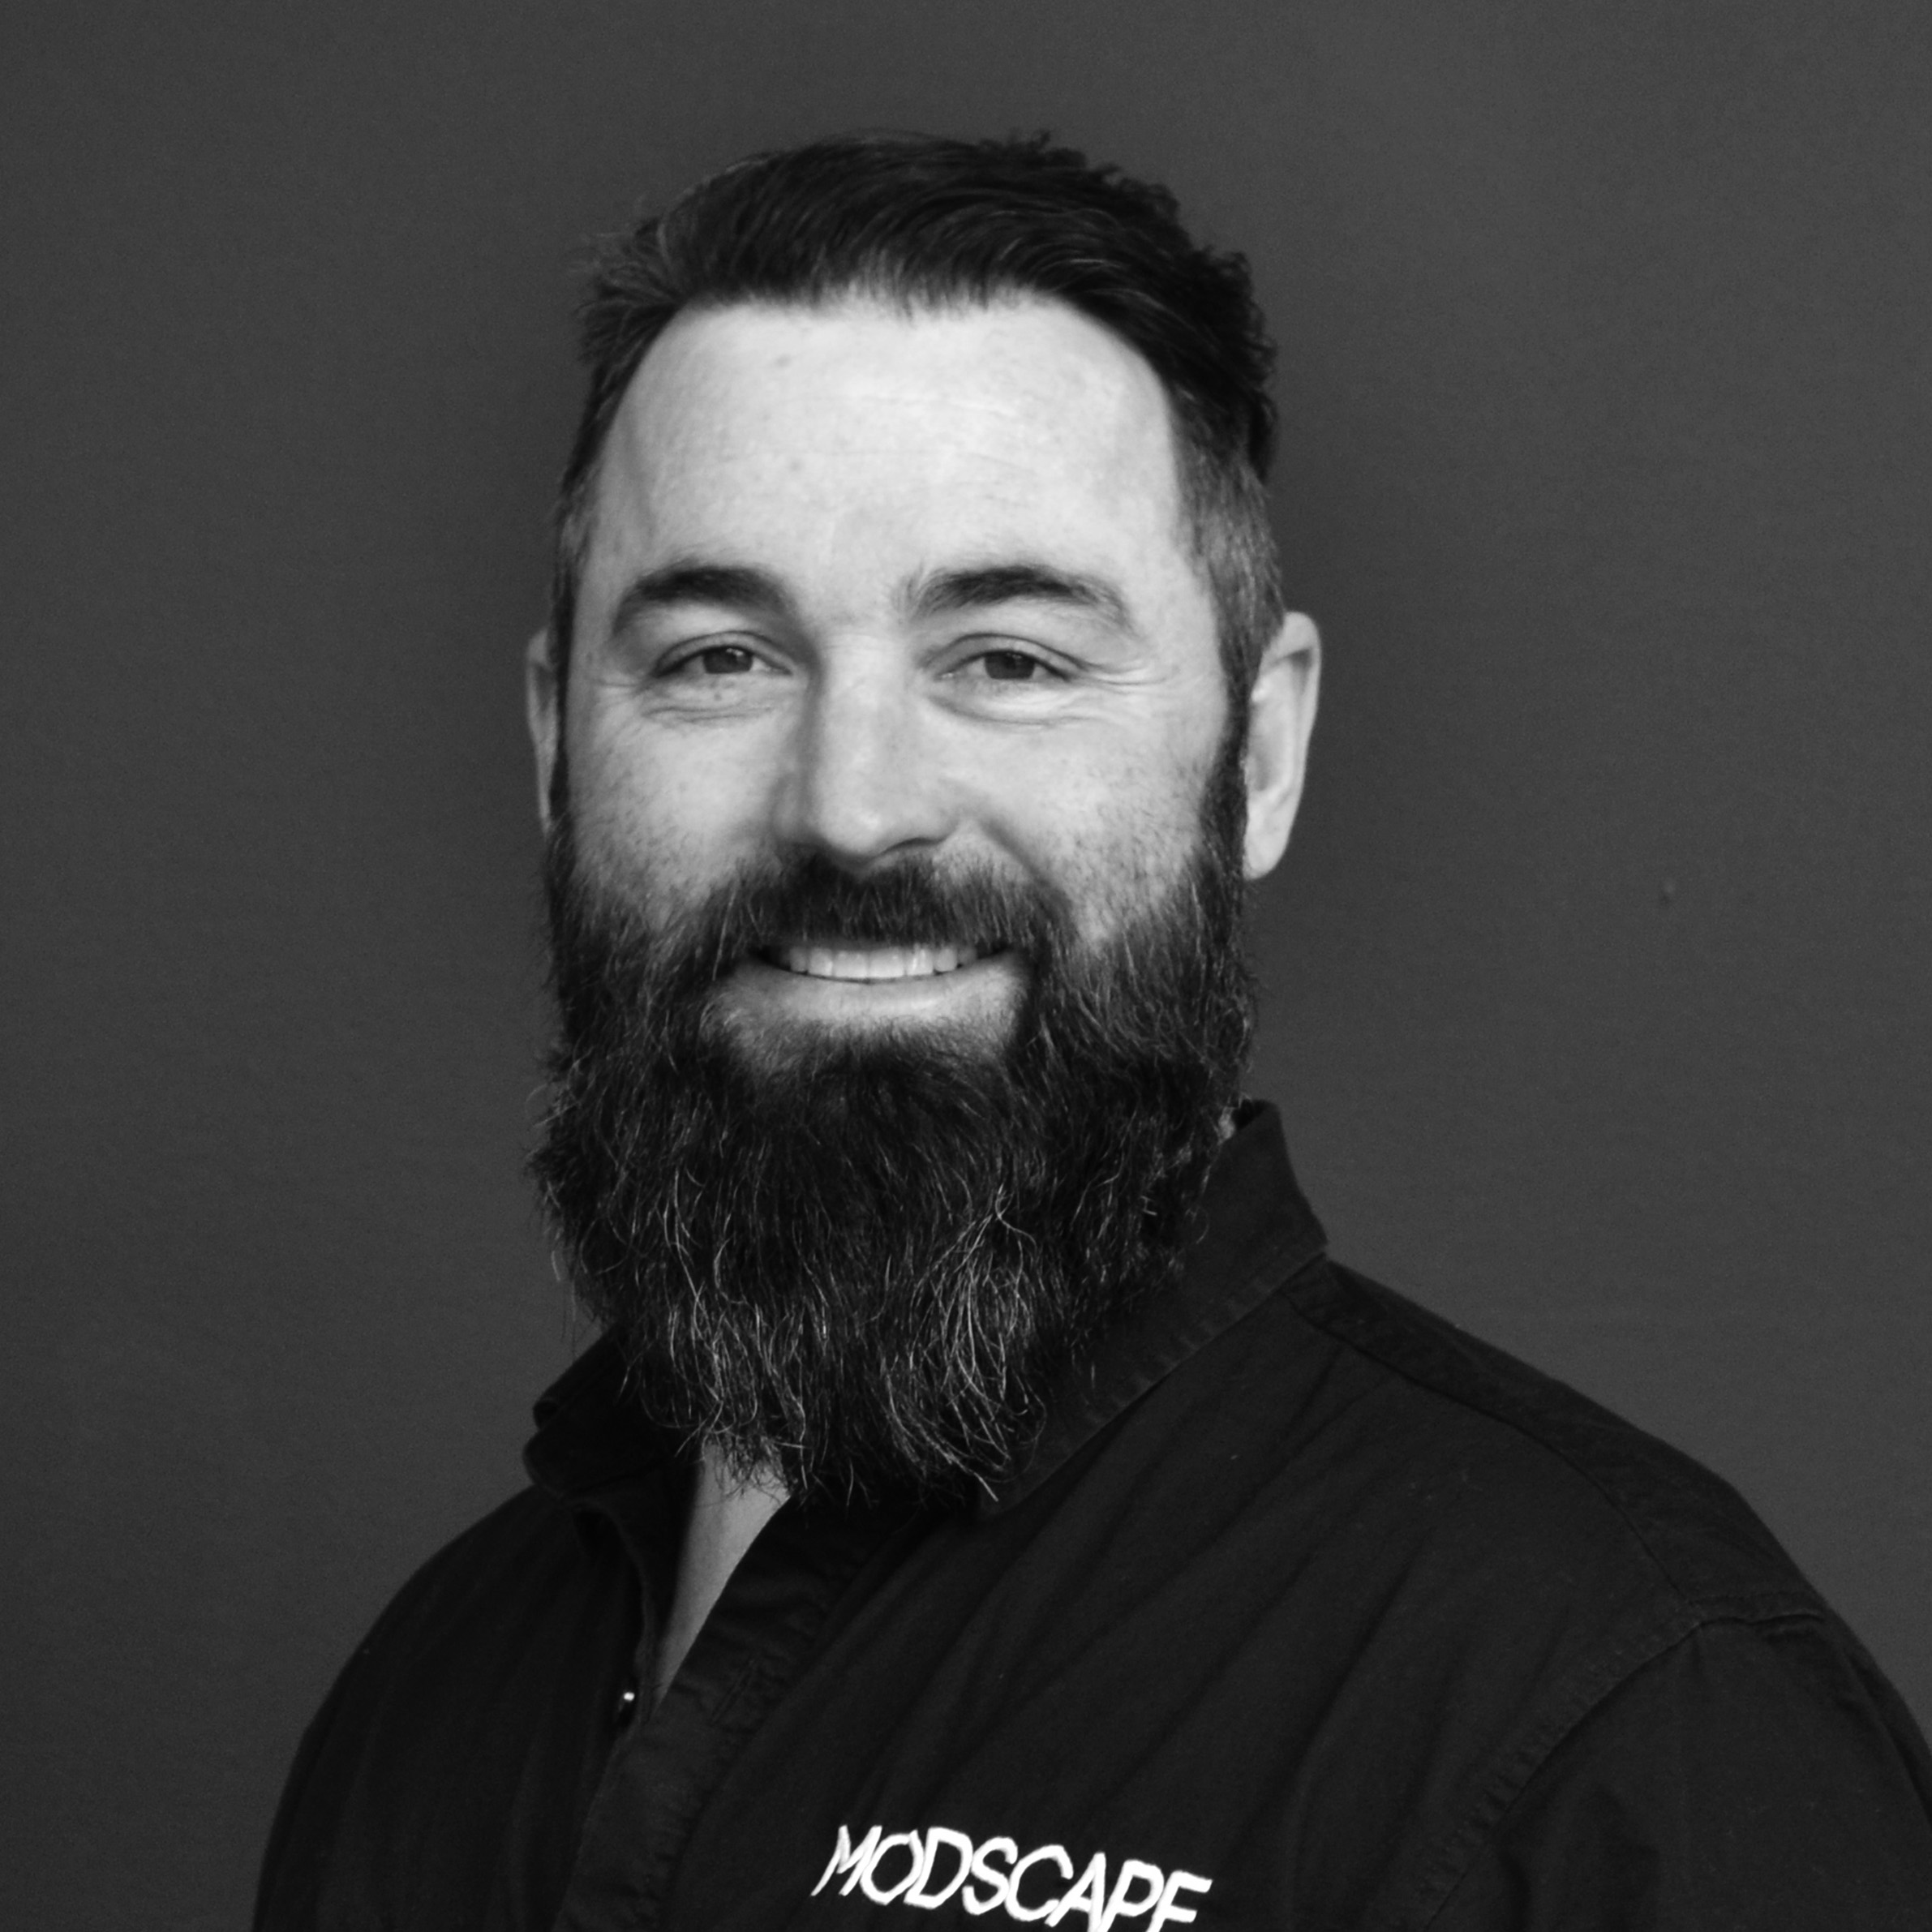 About the Modscape Team - building kit homes in Australia